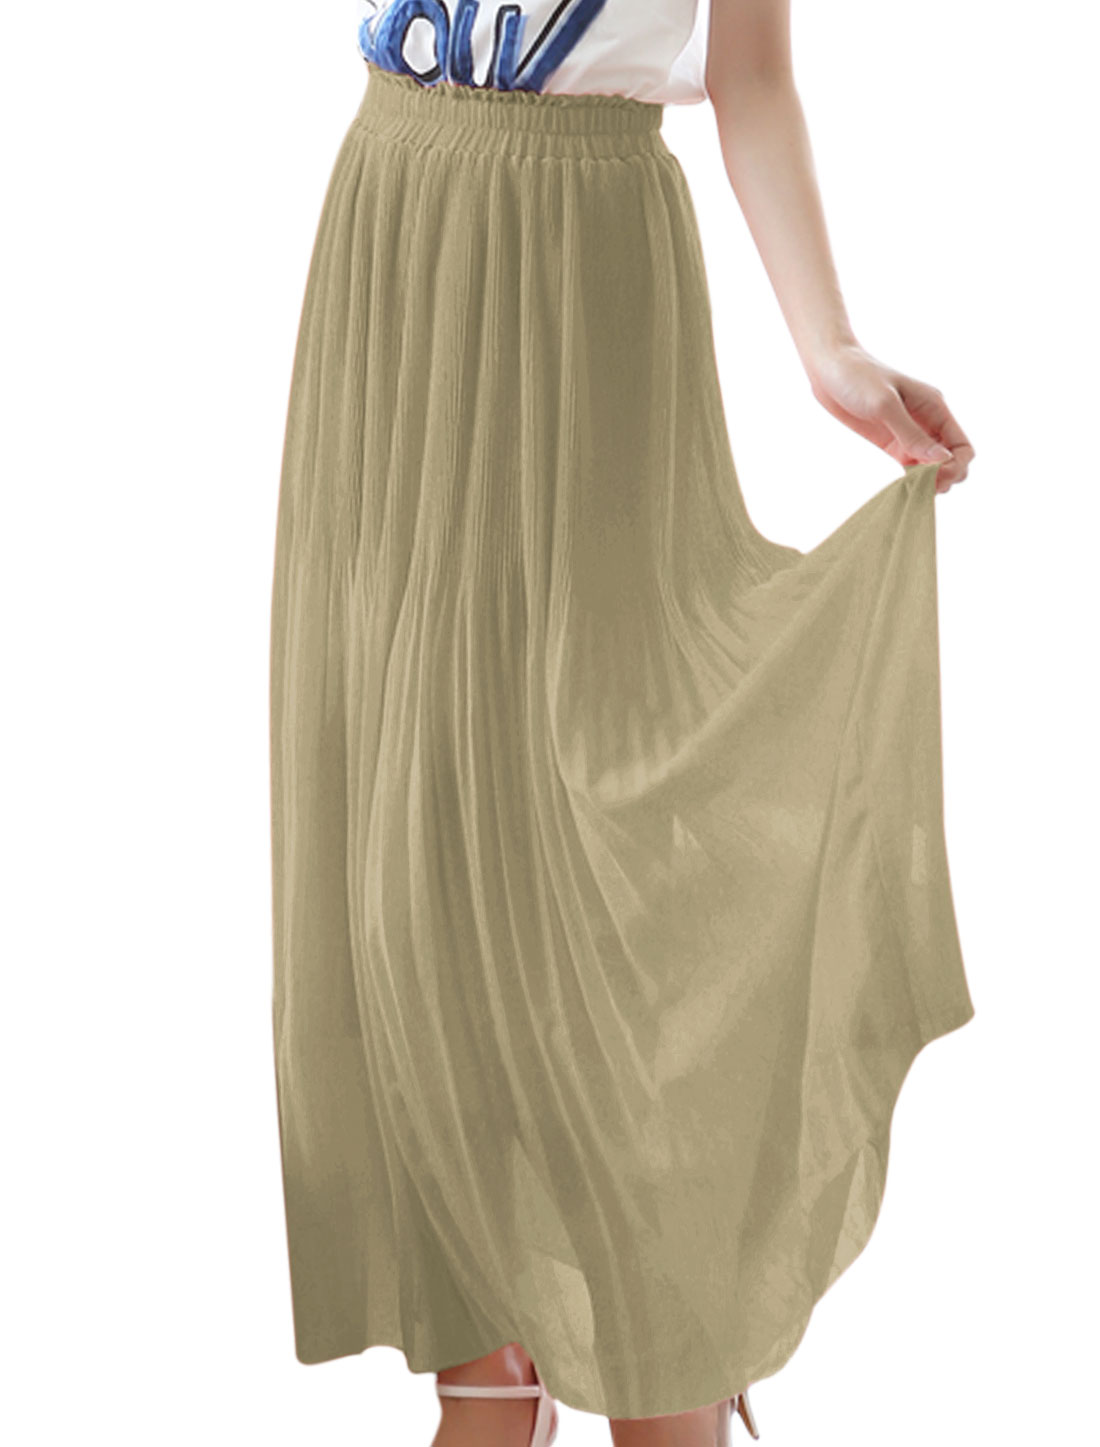 Lady Light Coffee Pleated Design Lining A-Line Skirt XS